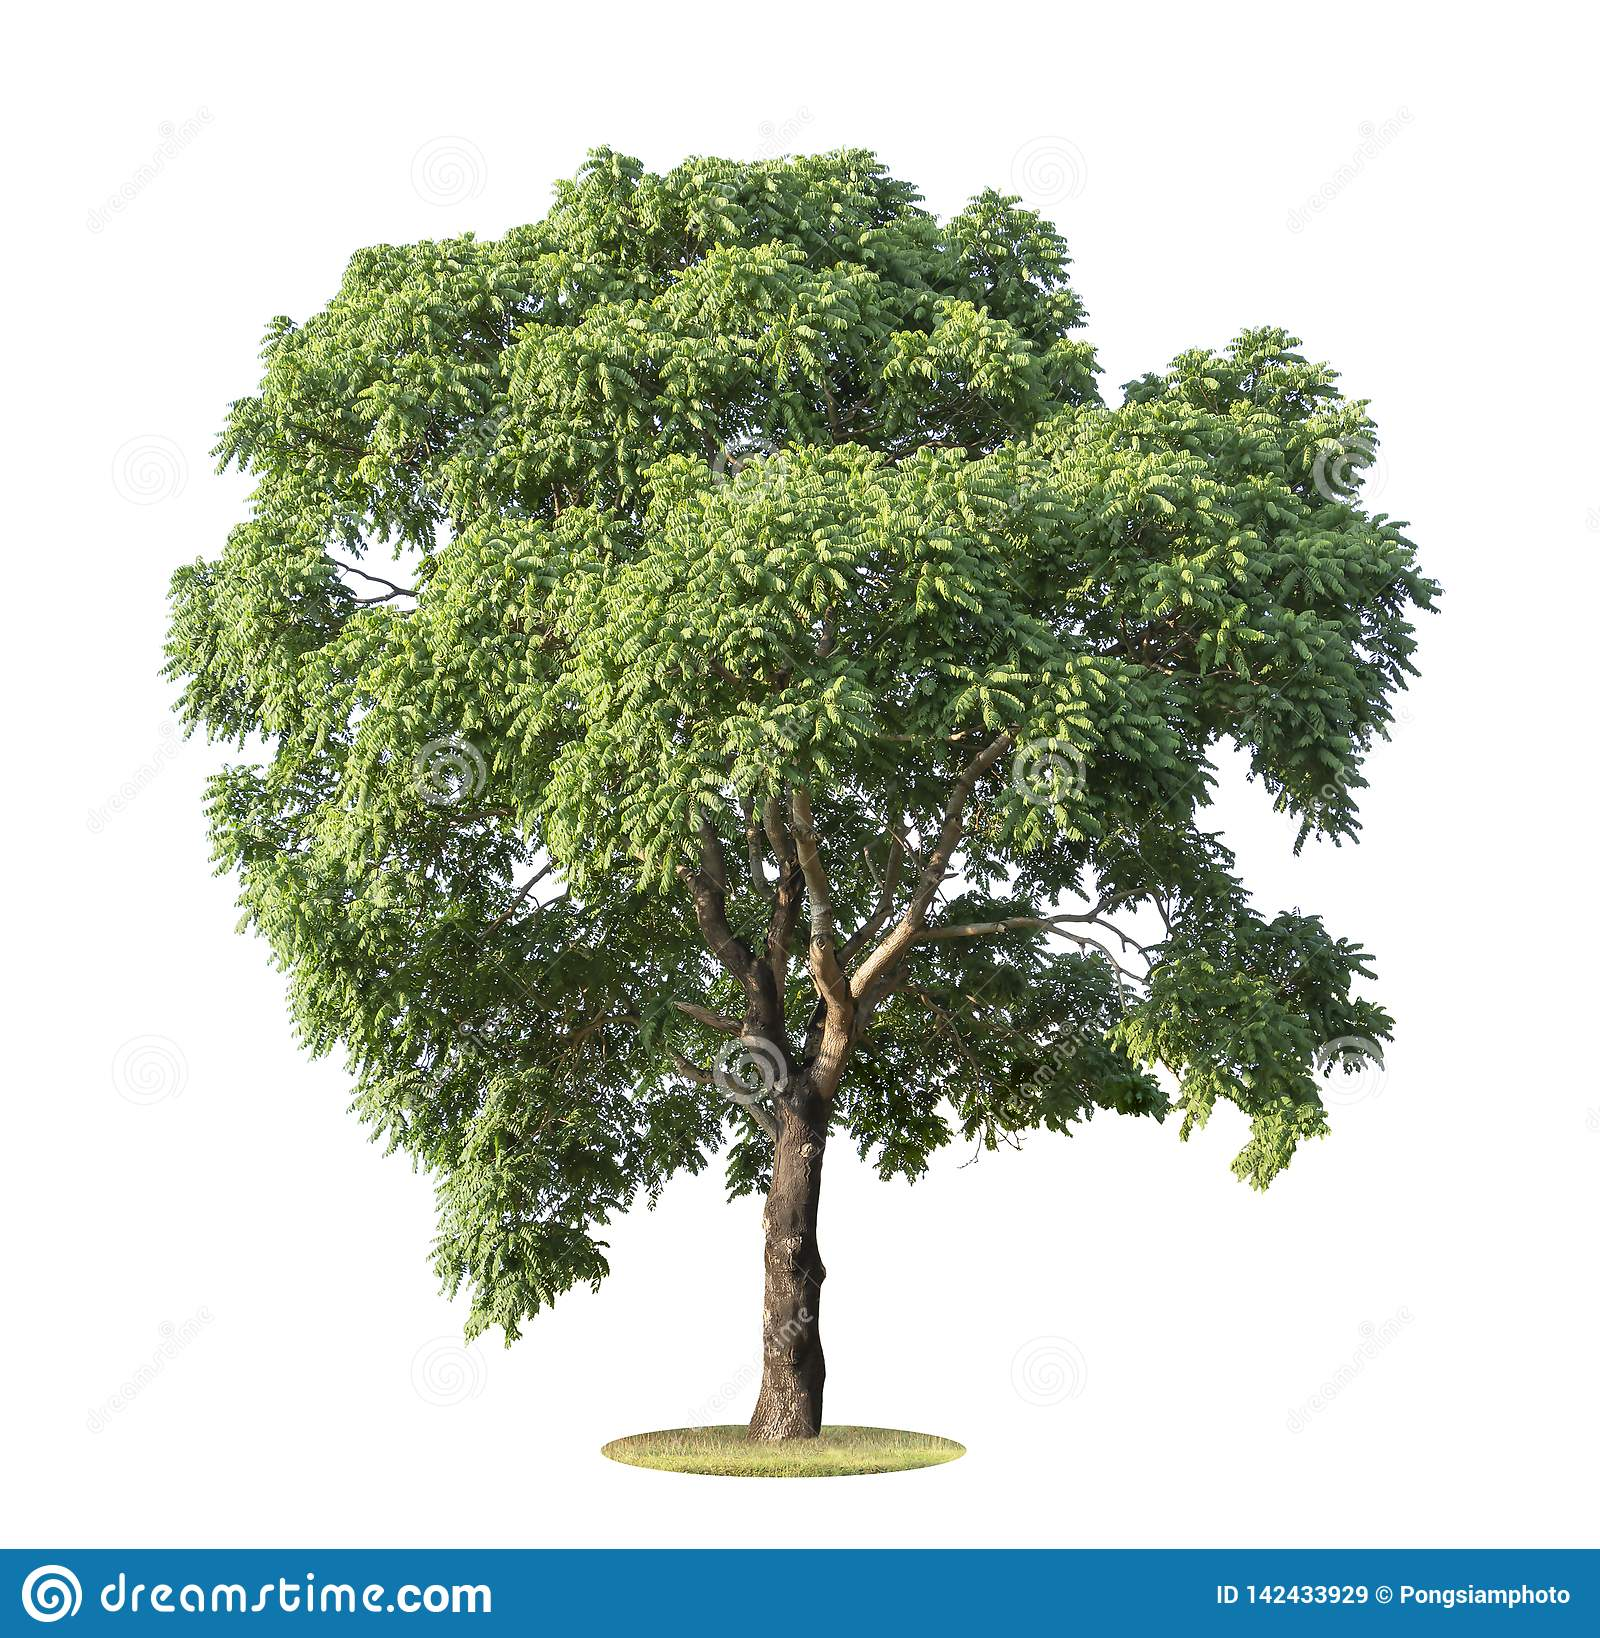 The big and green tree isolated on white background. Beautiful and robust trees are growing in the forest, garden or park